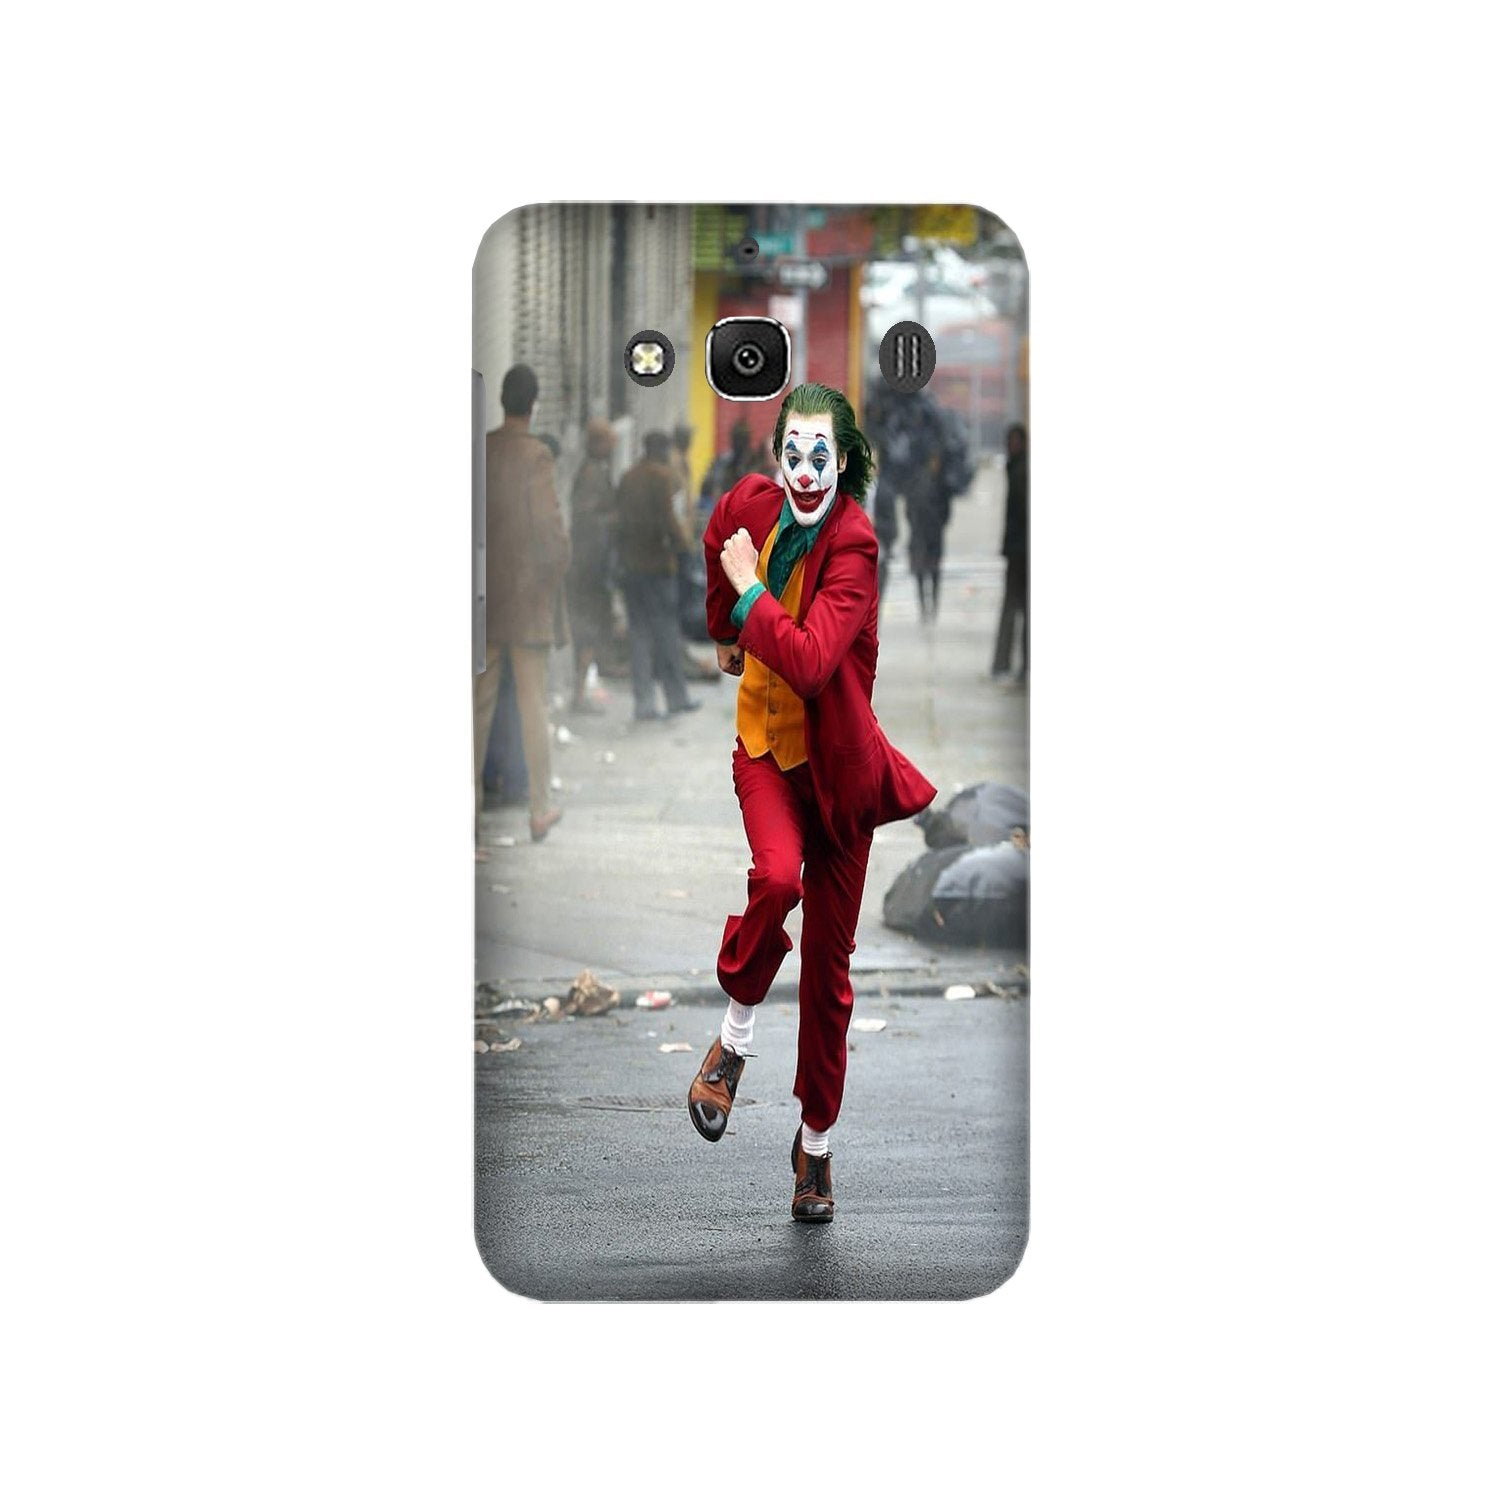 Joker Mobile Back Case for Redmi 2 Prime  (Design - 303)